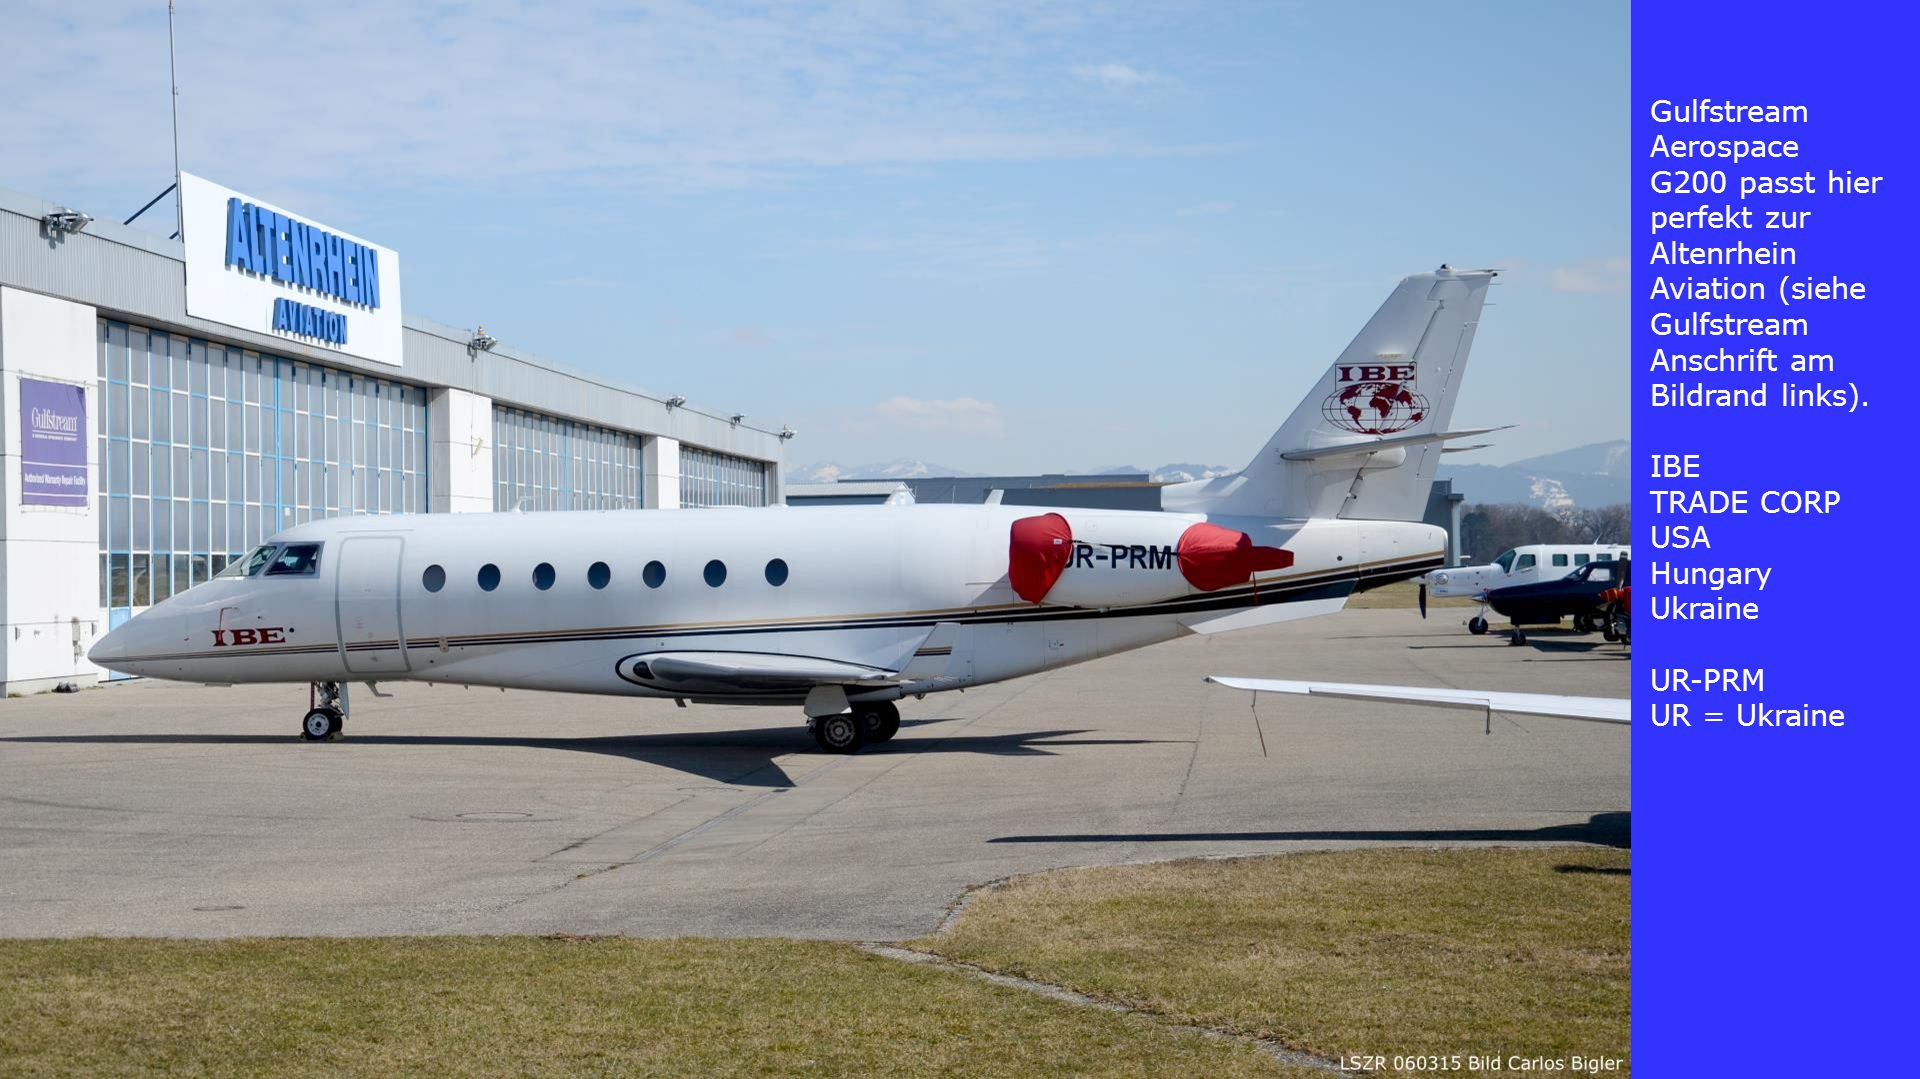 Gulfstream Aerospace G200 passt hier perfekt zur Altenrhein Aviation (siehe Gulfstream Anschrift am Bildrand links).